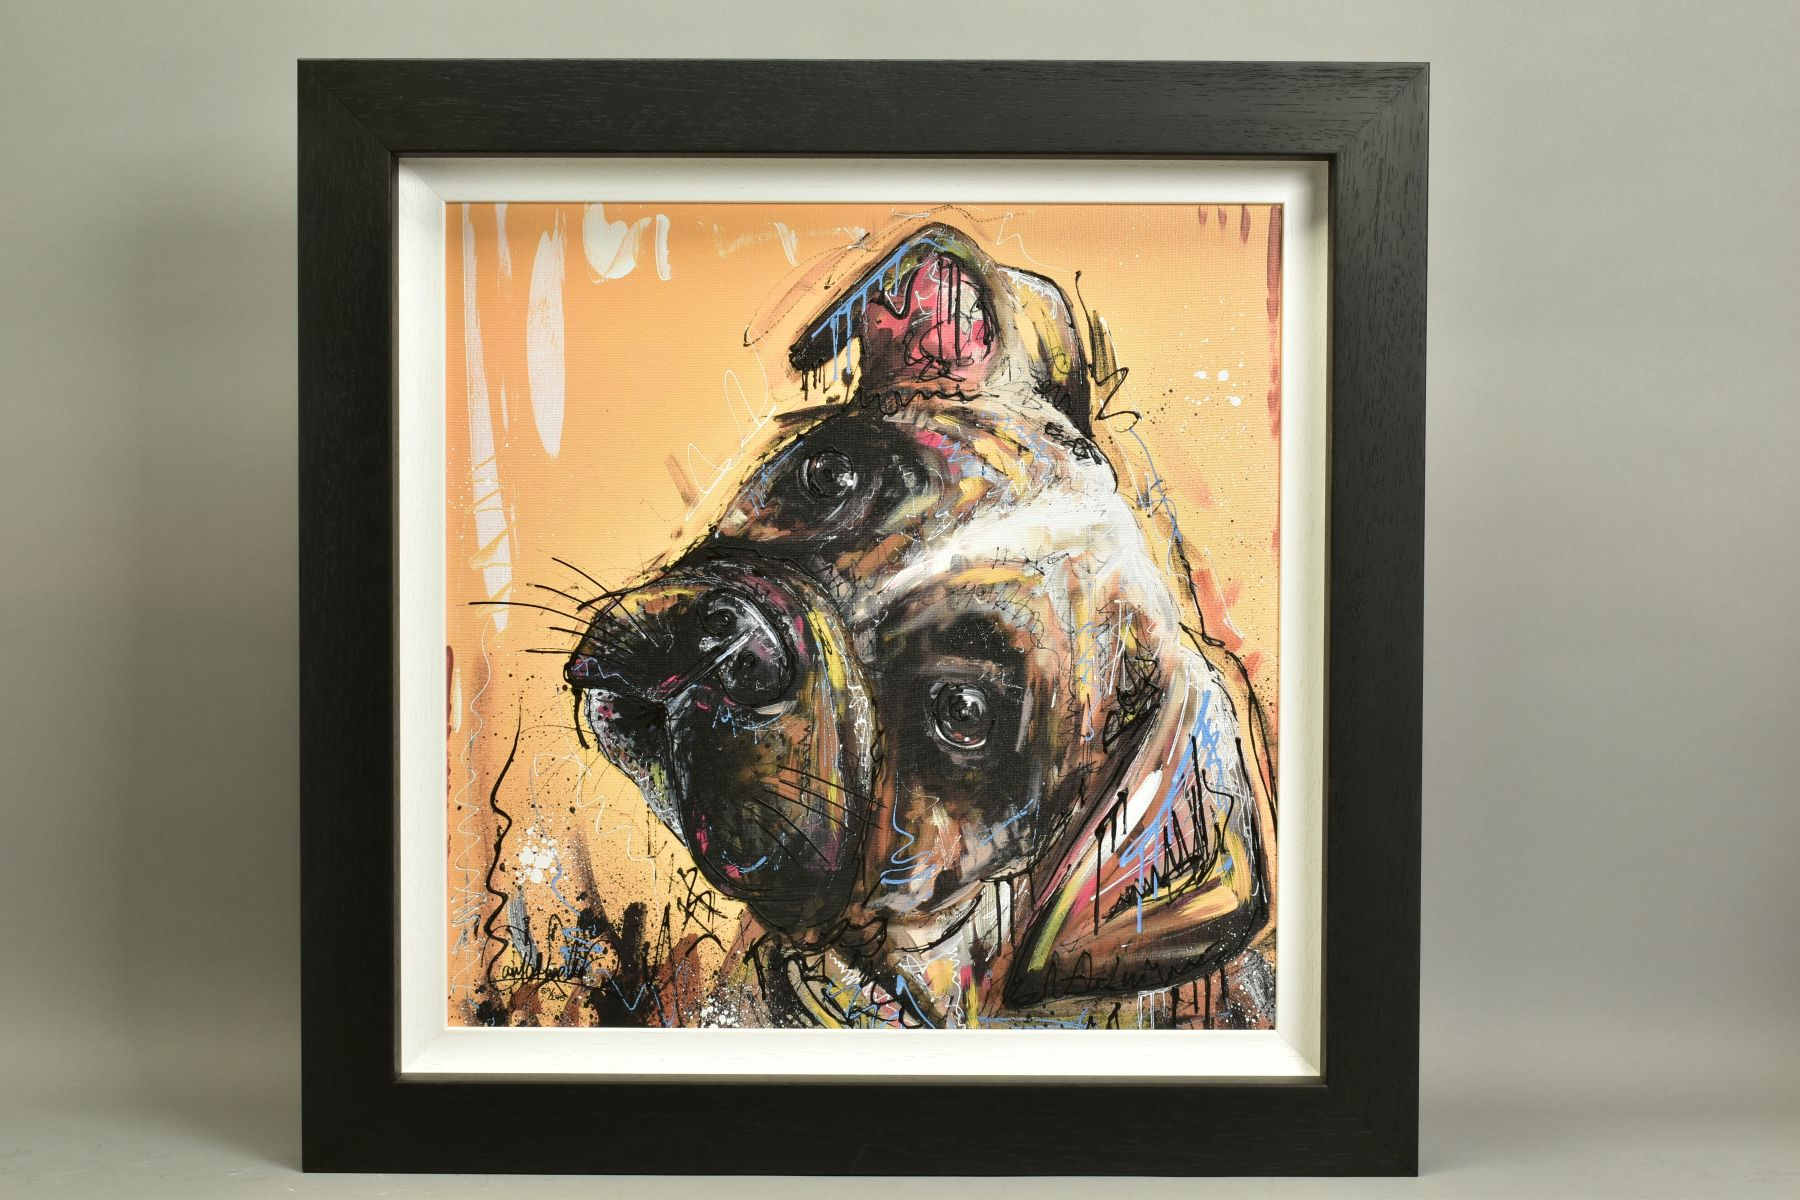 SAMANTHA ELLIS (BRITISH 1992), 'All Ears', a Limited Edition print of a small dog, signed bottom